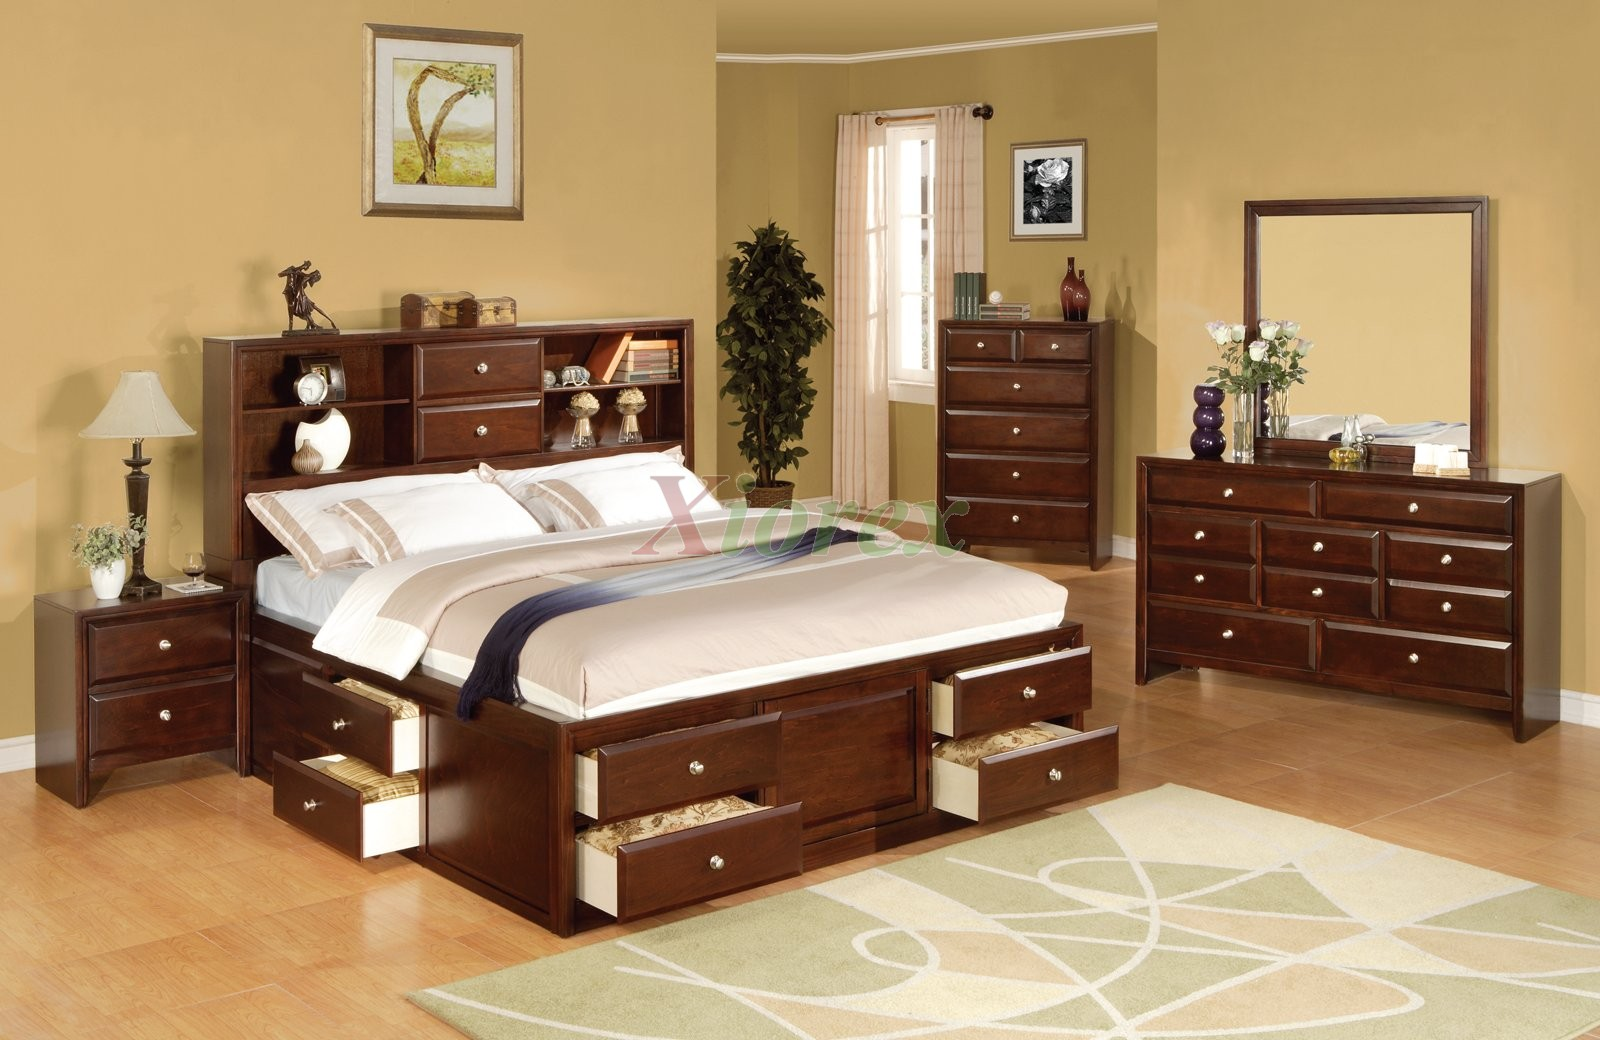 Astonishing Design Of The Bedroom Storage Furniture With Brown Wooden Frame Bed Ideas With Brown Wooden Cabinets With Grey Rugs